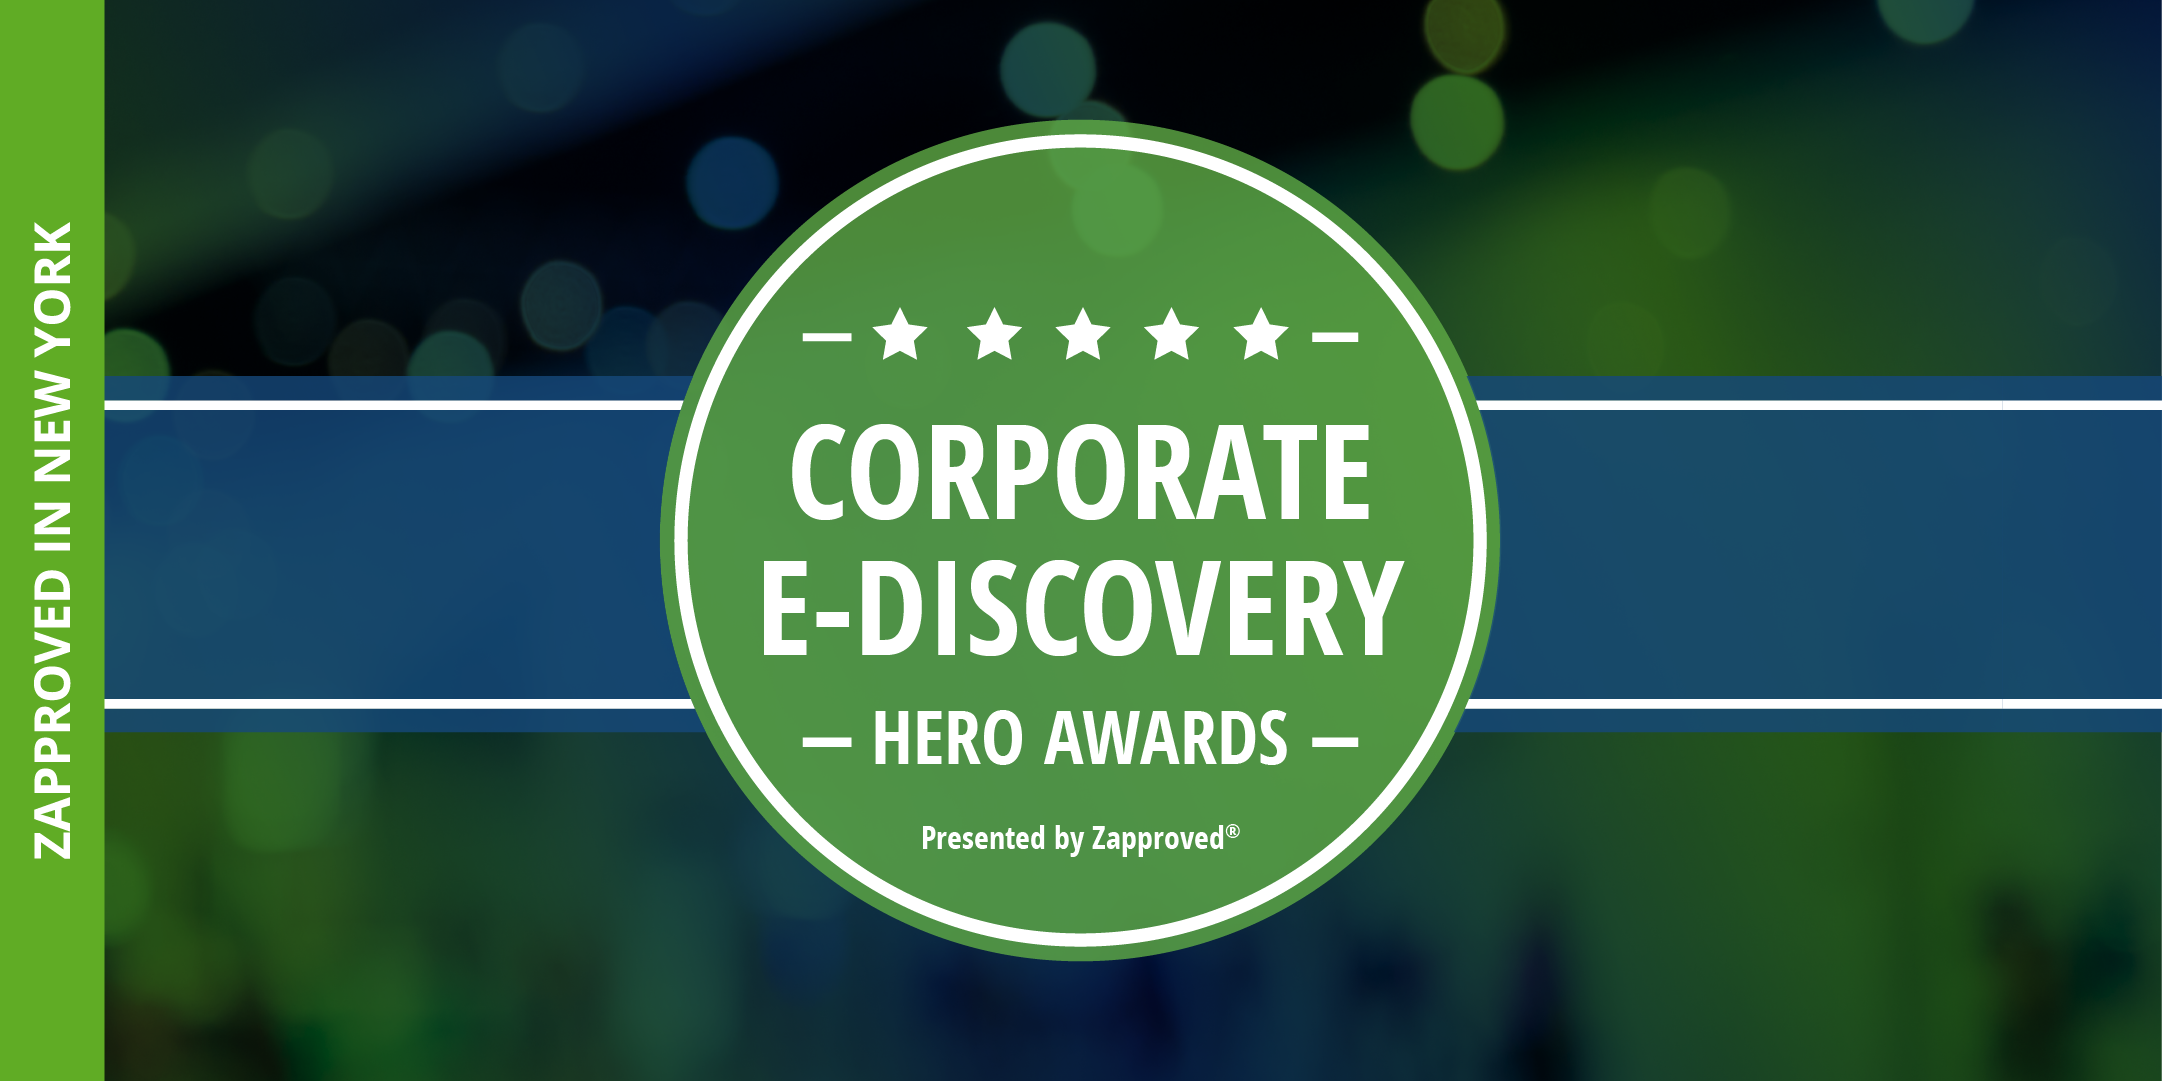 2018 Corporate E-Discovery Hero Awards